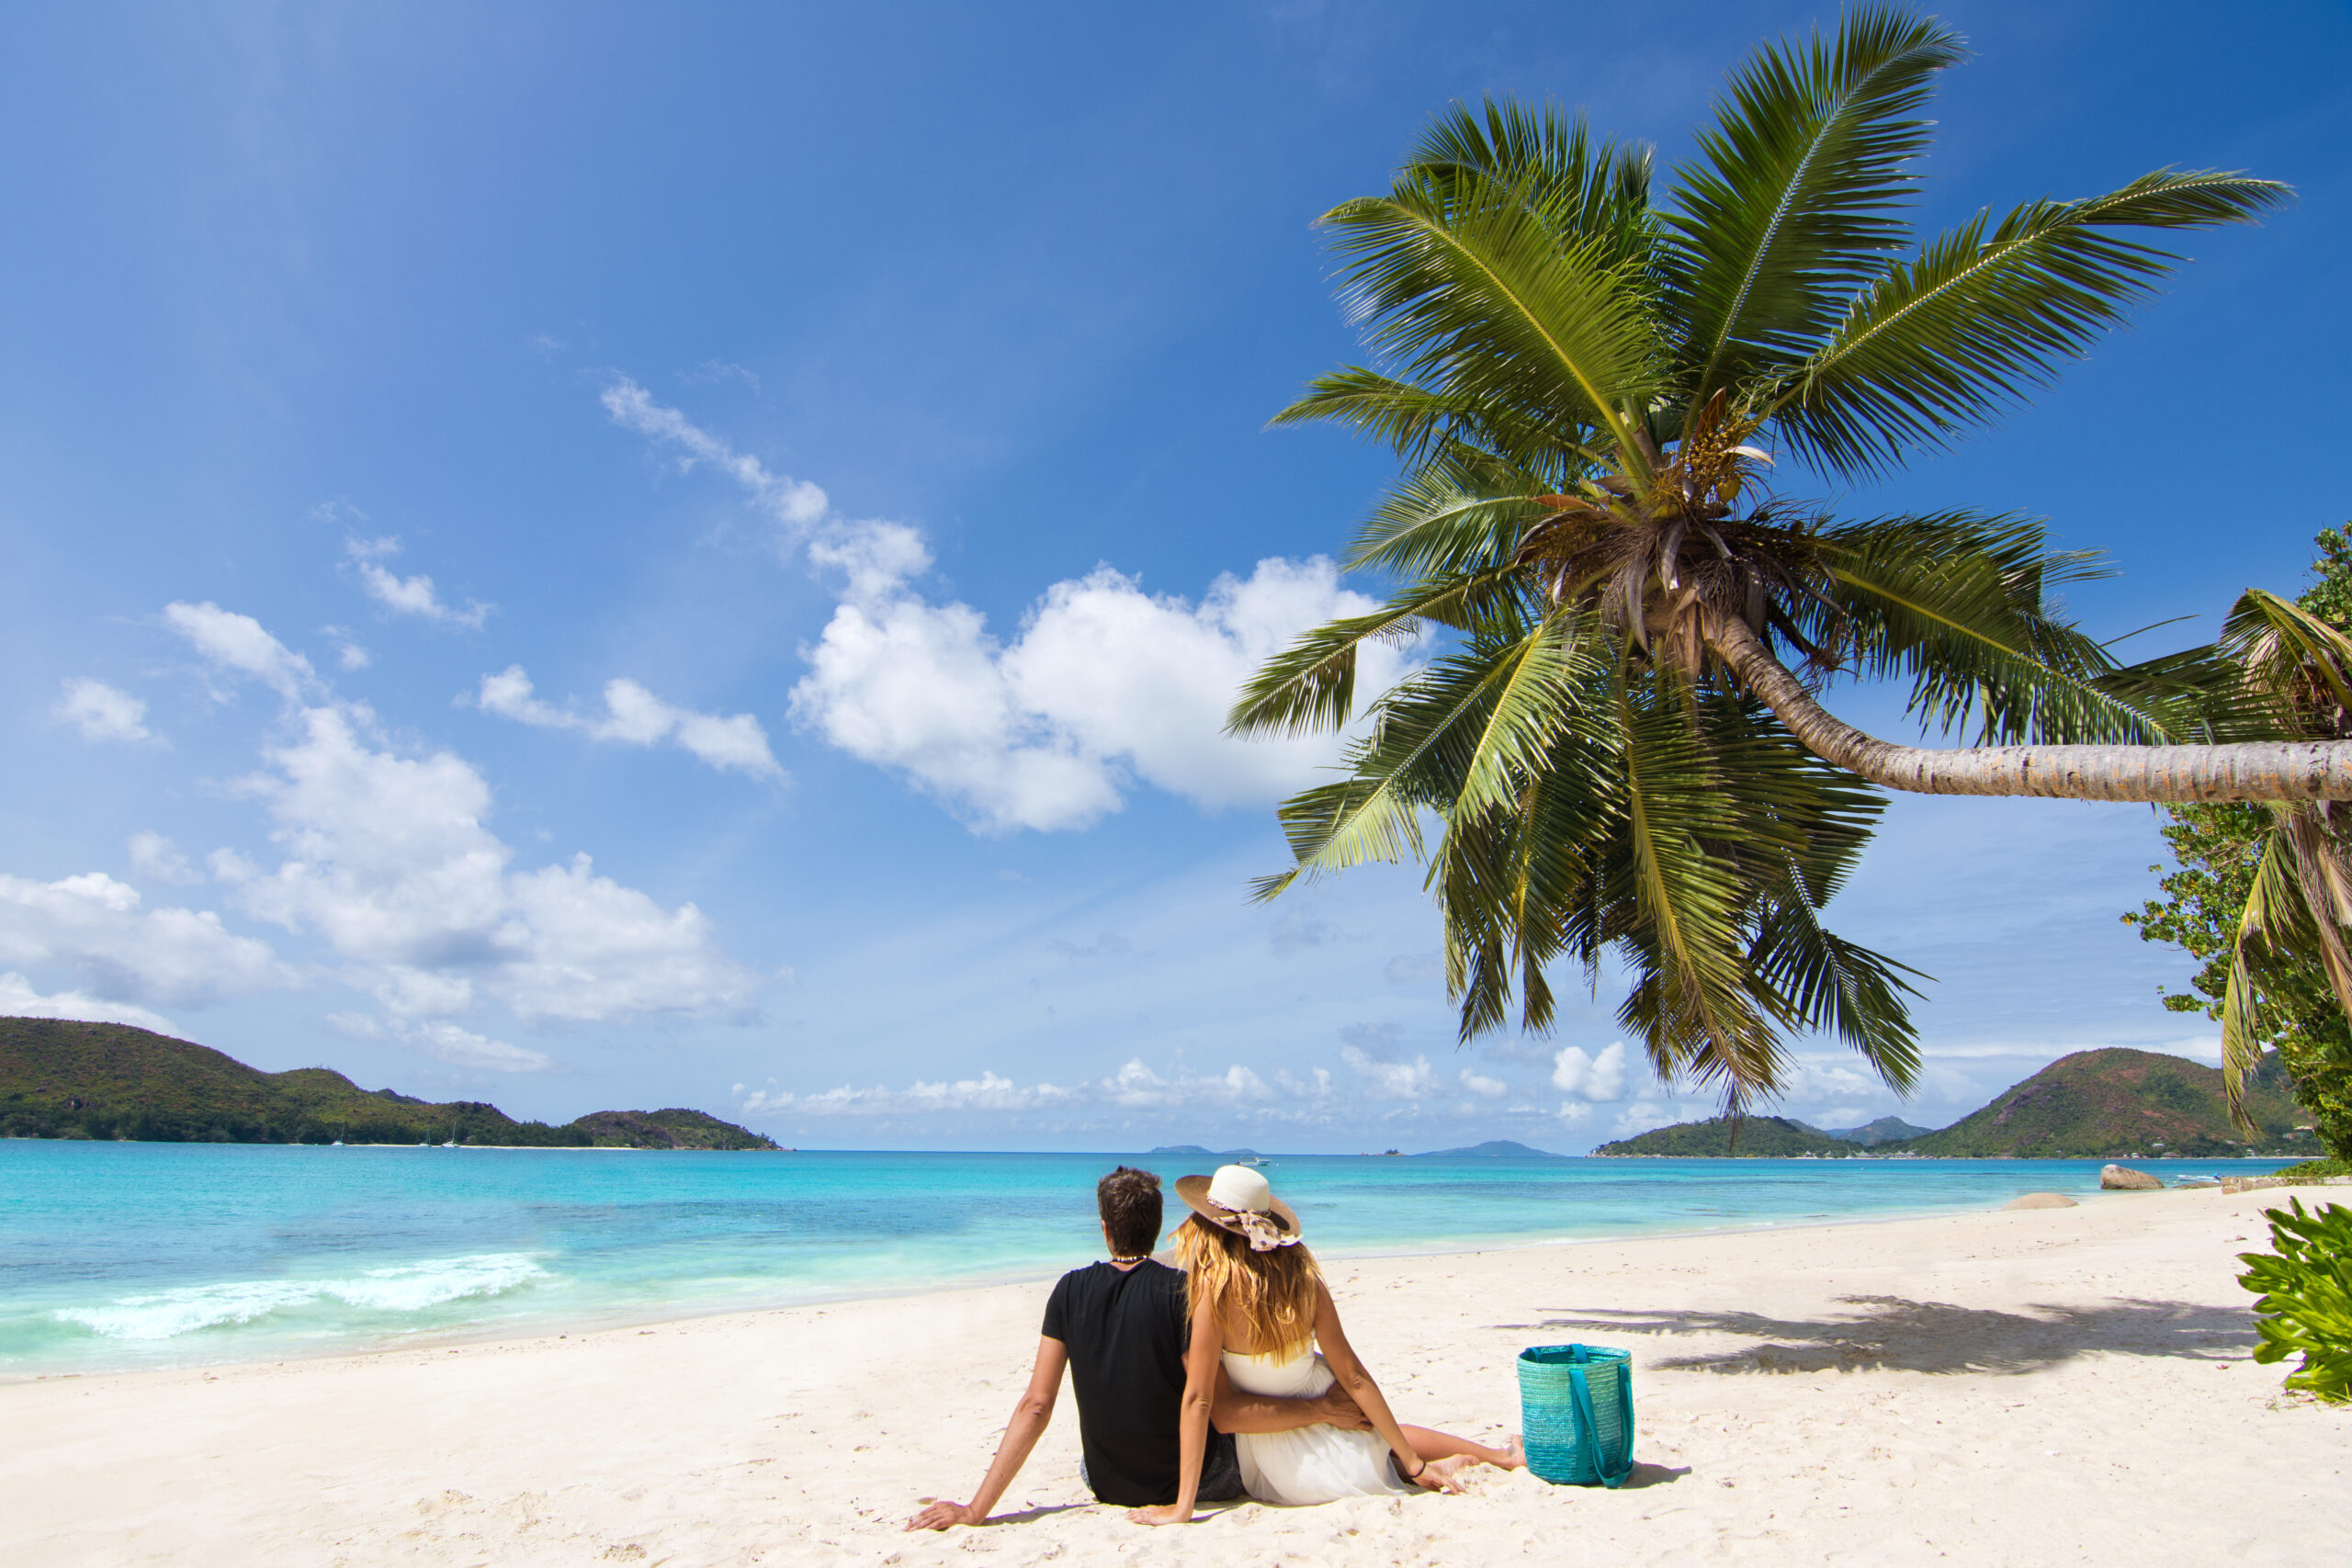 how to become a digital nomad header image- the backs of a couple sitting on a tropical beach with turquise water and a leaning palm tree